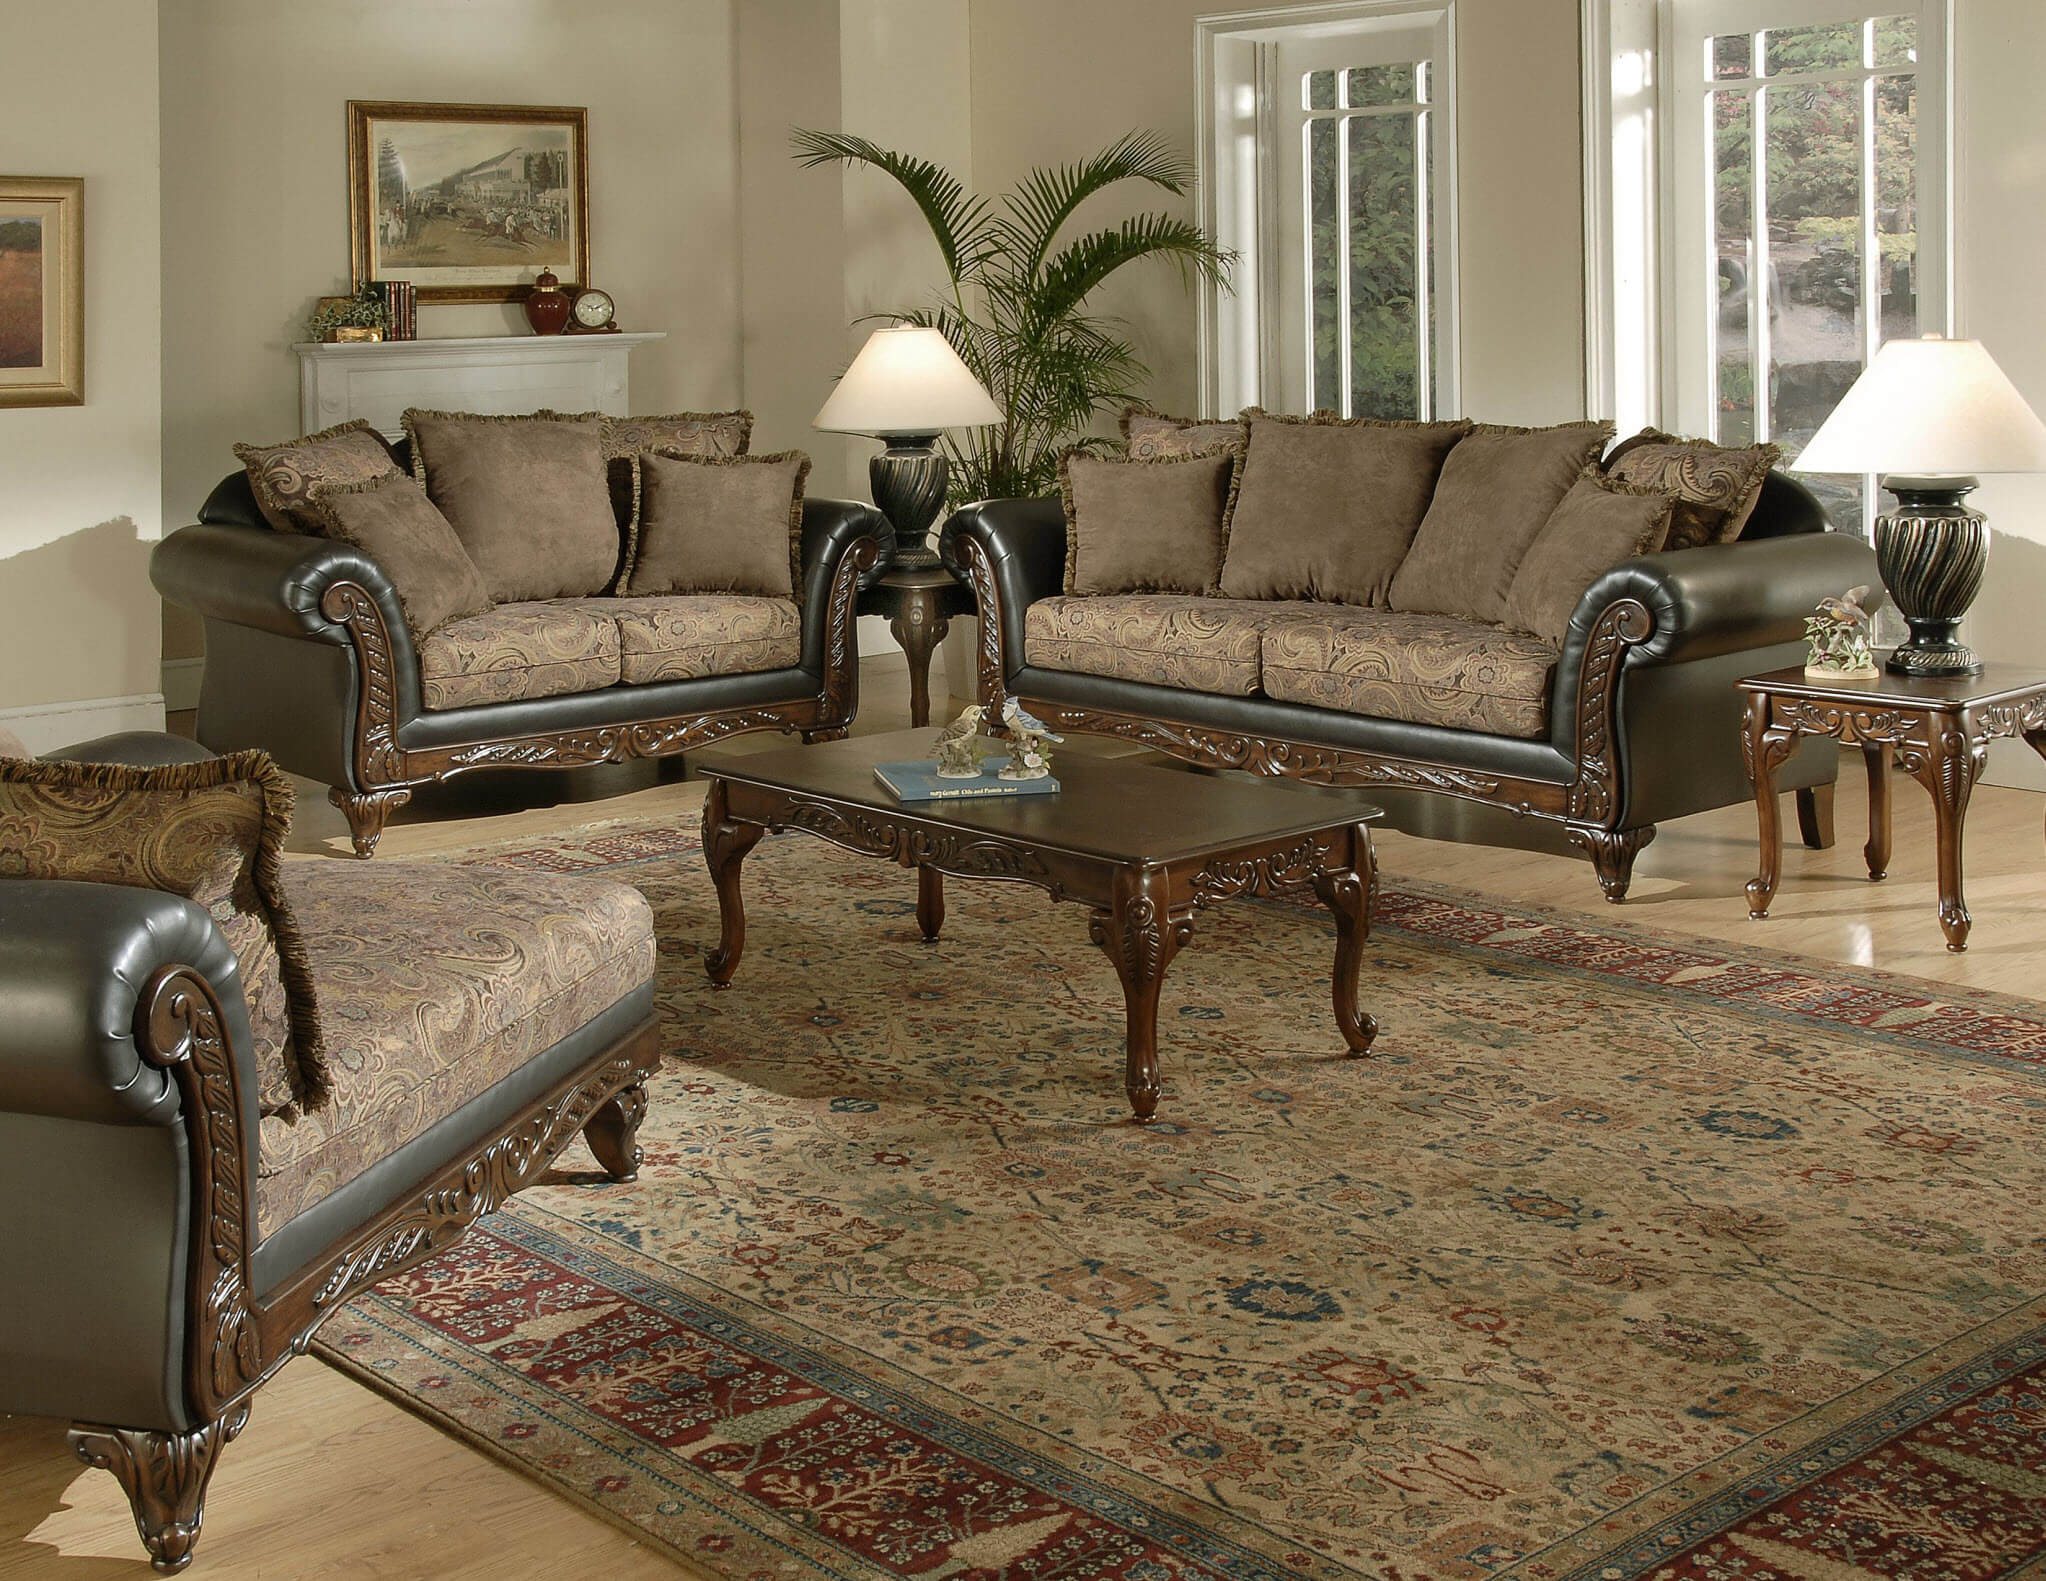 San Marino Silas Raisin Sofa and Loveseat | Living Room Sets